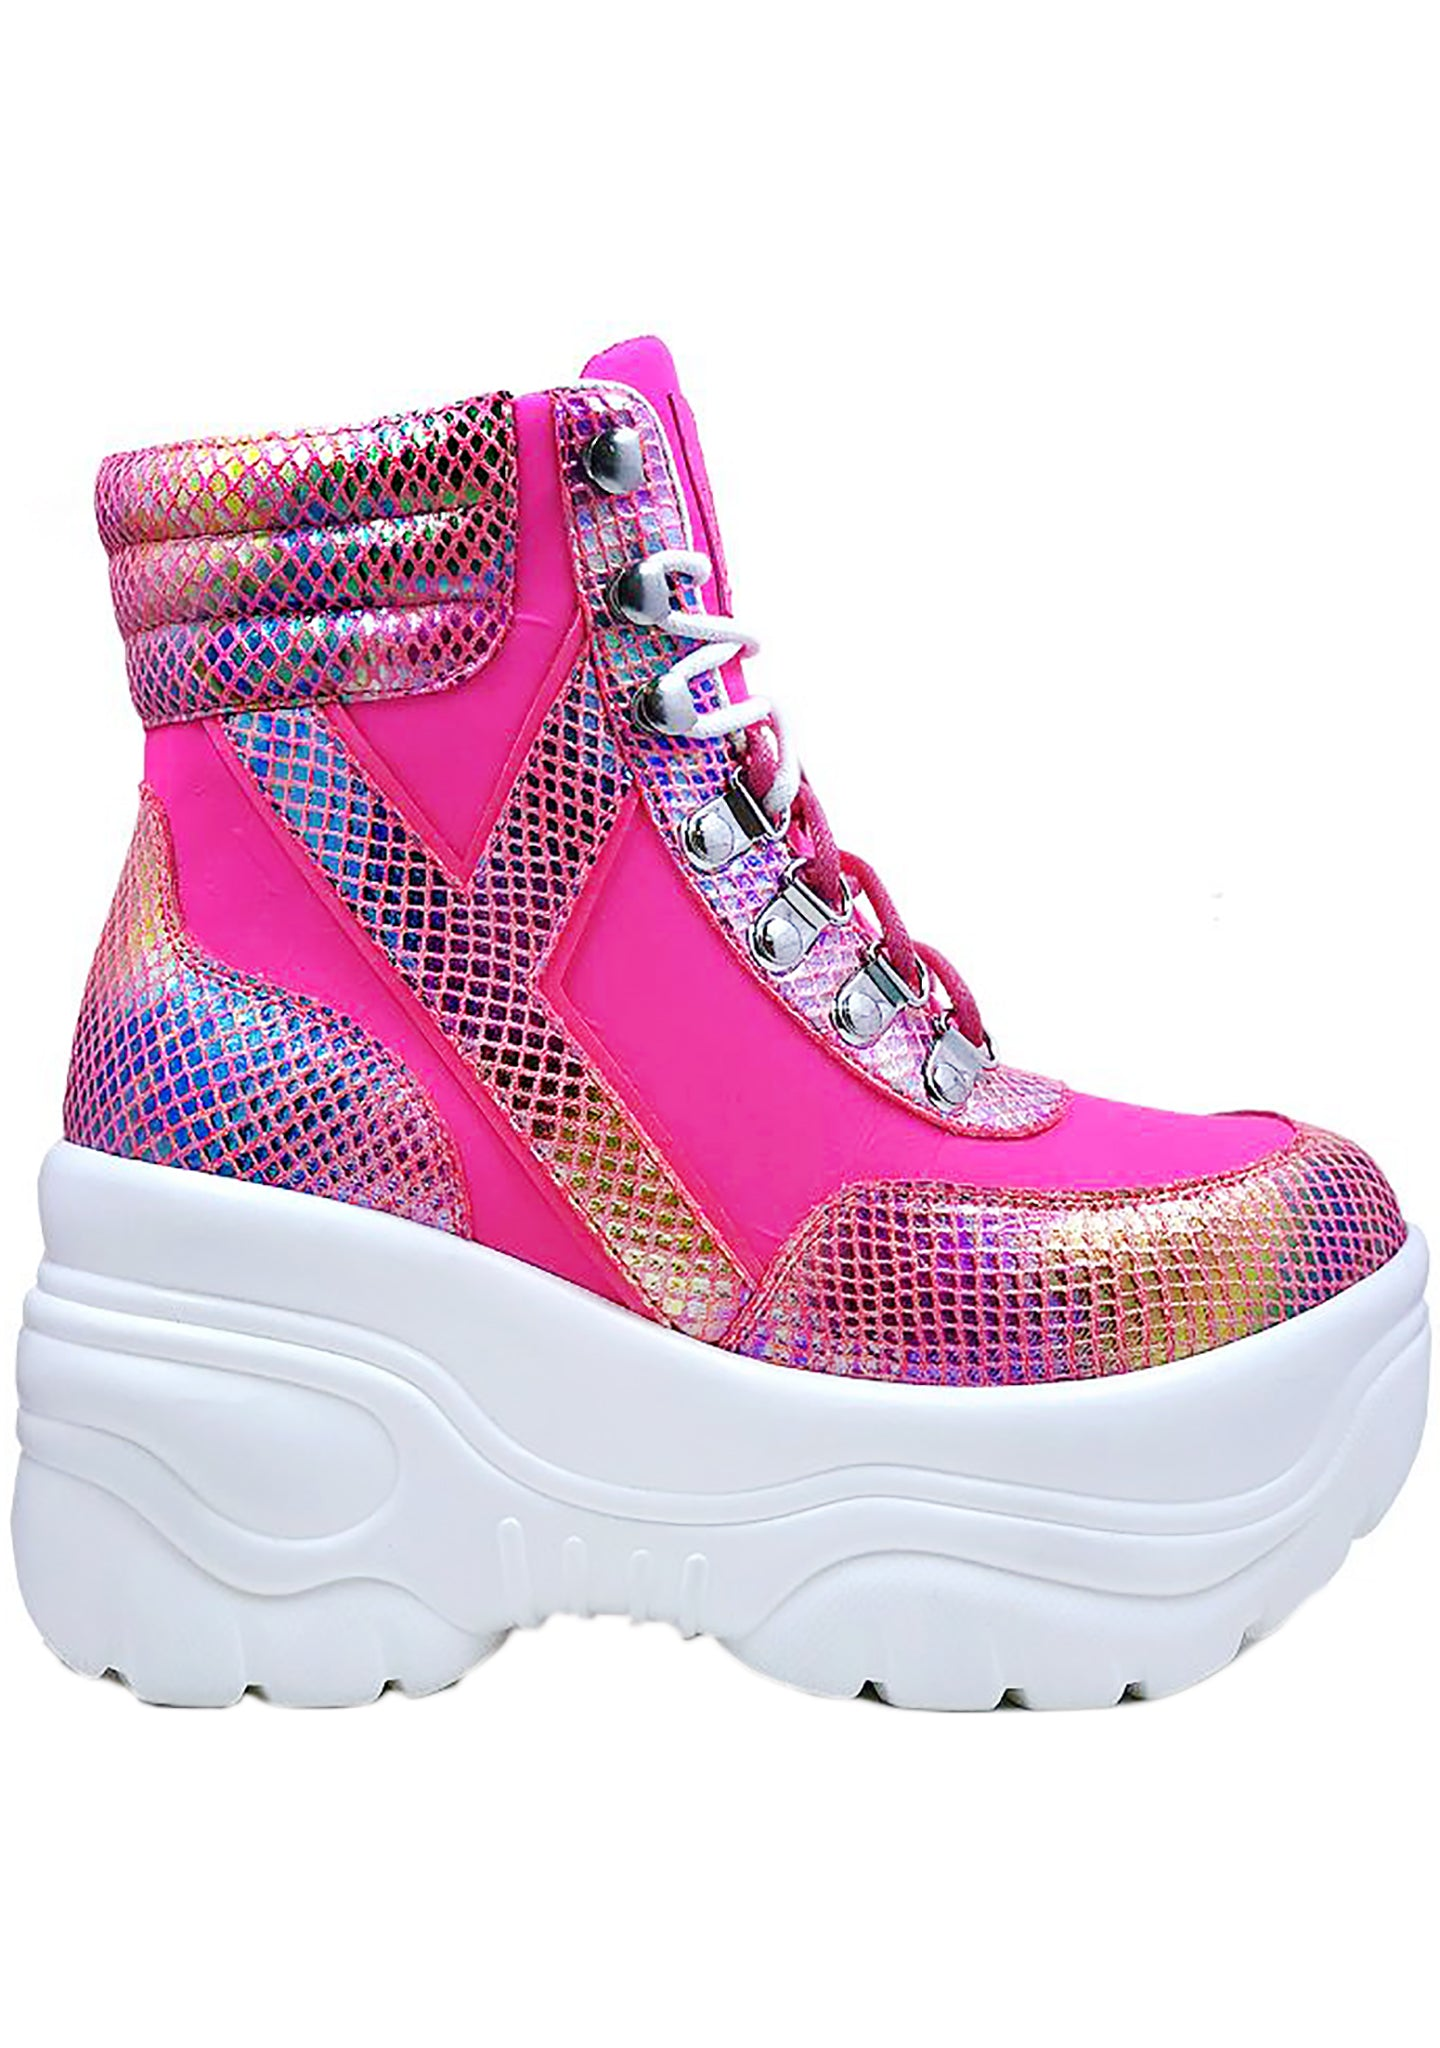 Matrixx Hi 2 Queen Cobra Platform Sneakers